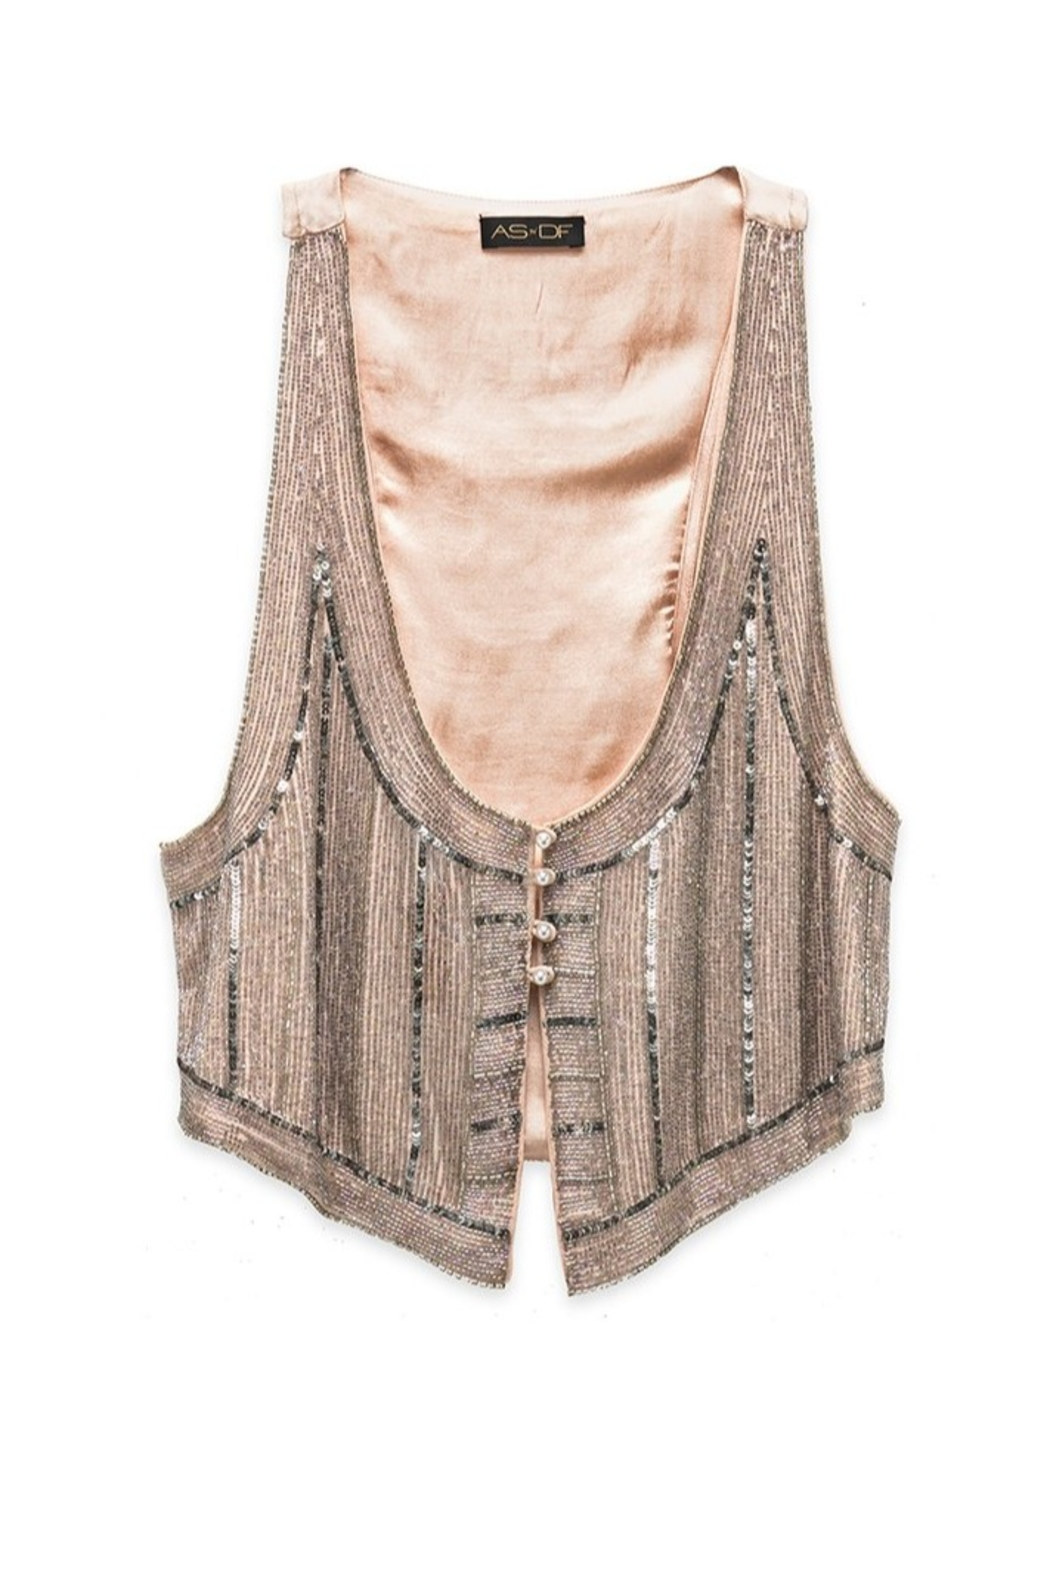 AS by DF Giada Beaded Vest - Main Image